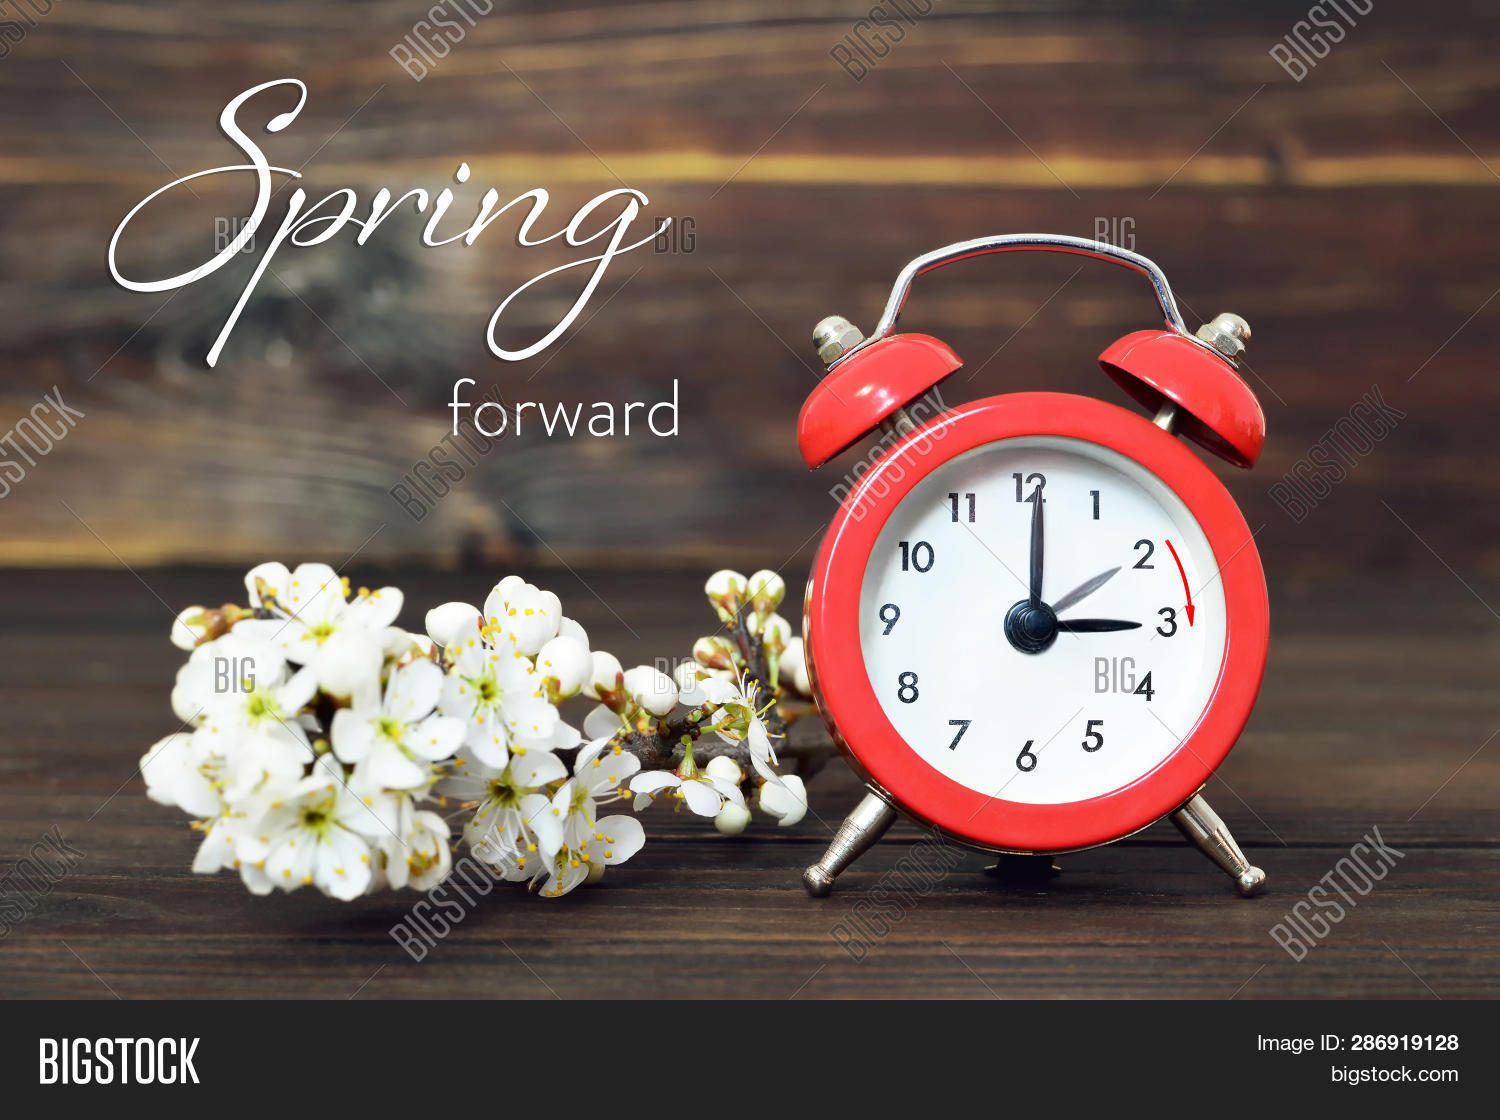 Daylight,alarm,background,bloom,blossom,branch,change,clock,concept,dst,face,flowers,forward,hour,minute,red,retro,saving,season,set,spring,summer,summertime,time,tree,turn,twig,vintage,watch,white,wooden